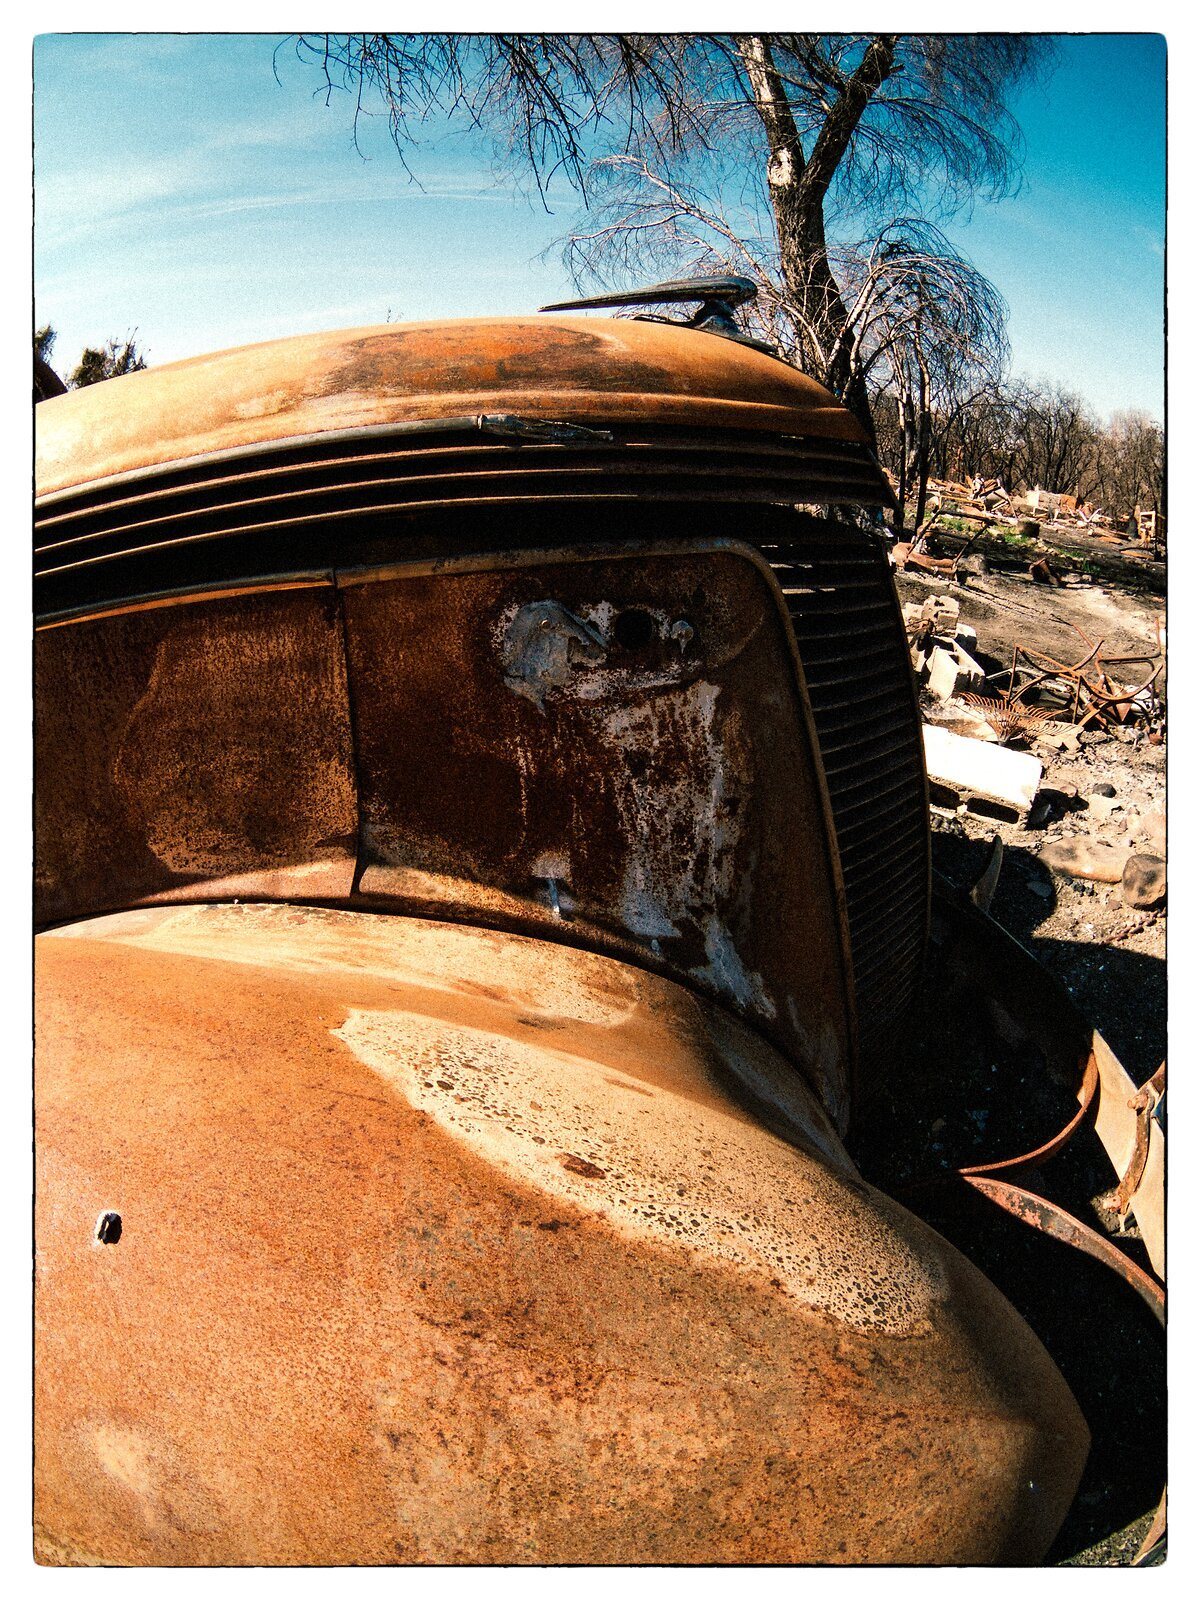 Q7_Mar3_21_Studebaker_fish-eye#1.jpg